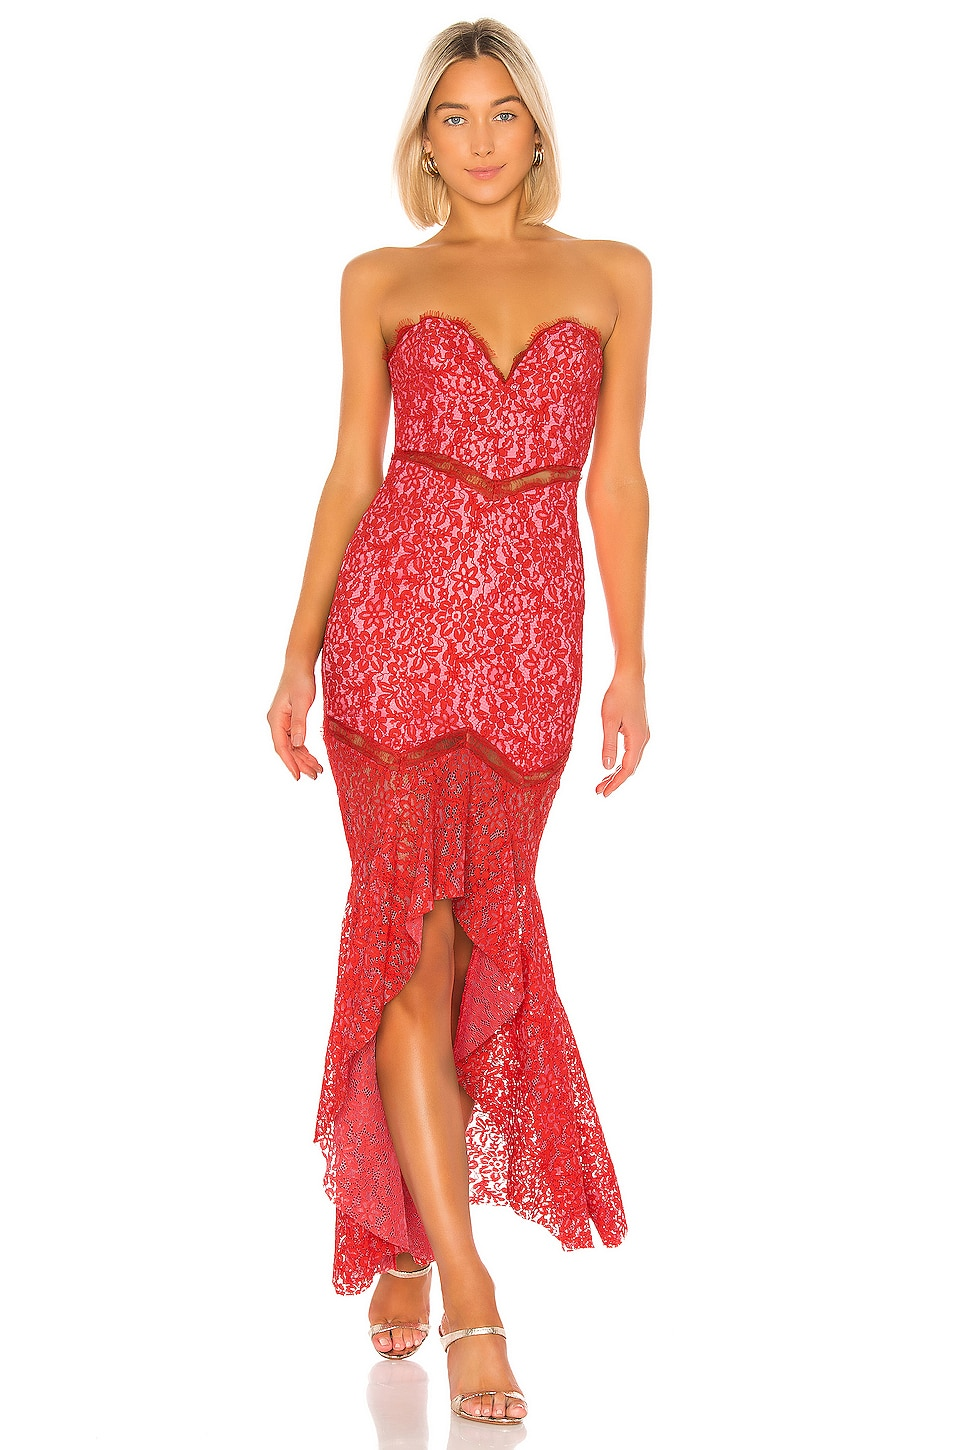 Lovers + Friends Keva Gown in Red & Pink